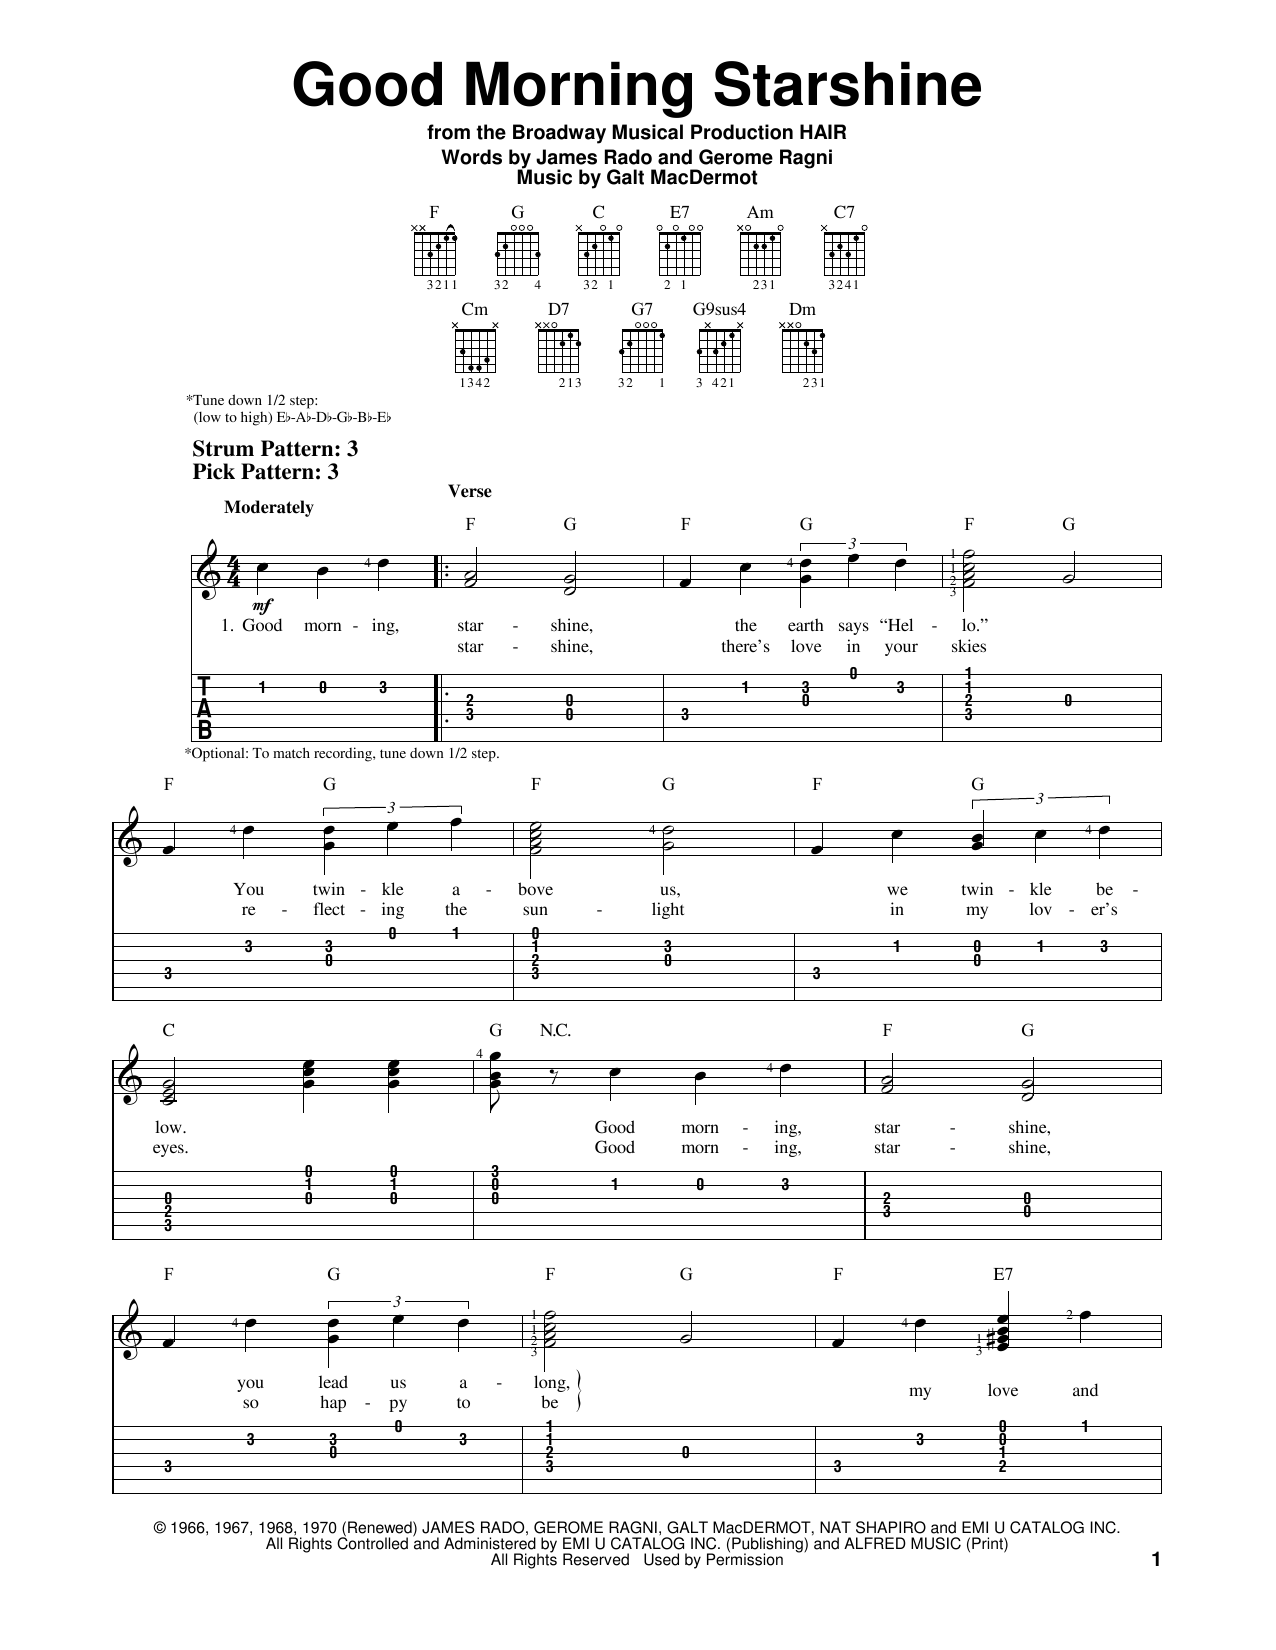 Good Morning Starshine Sheet Music